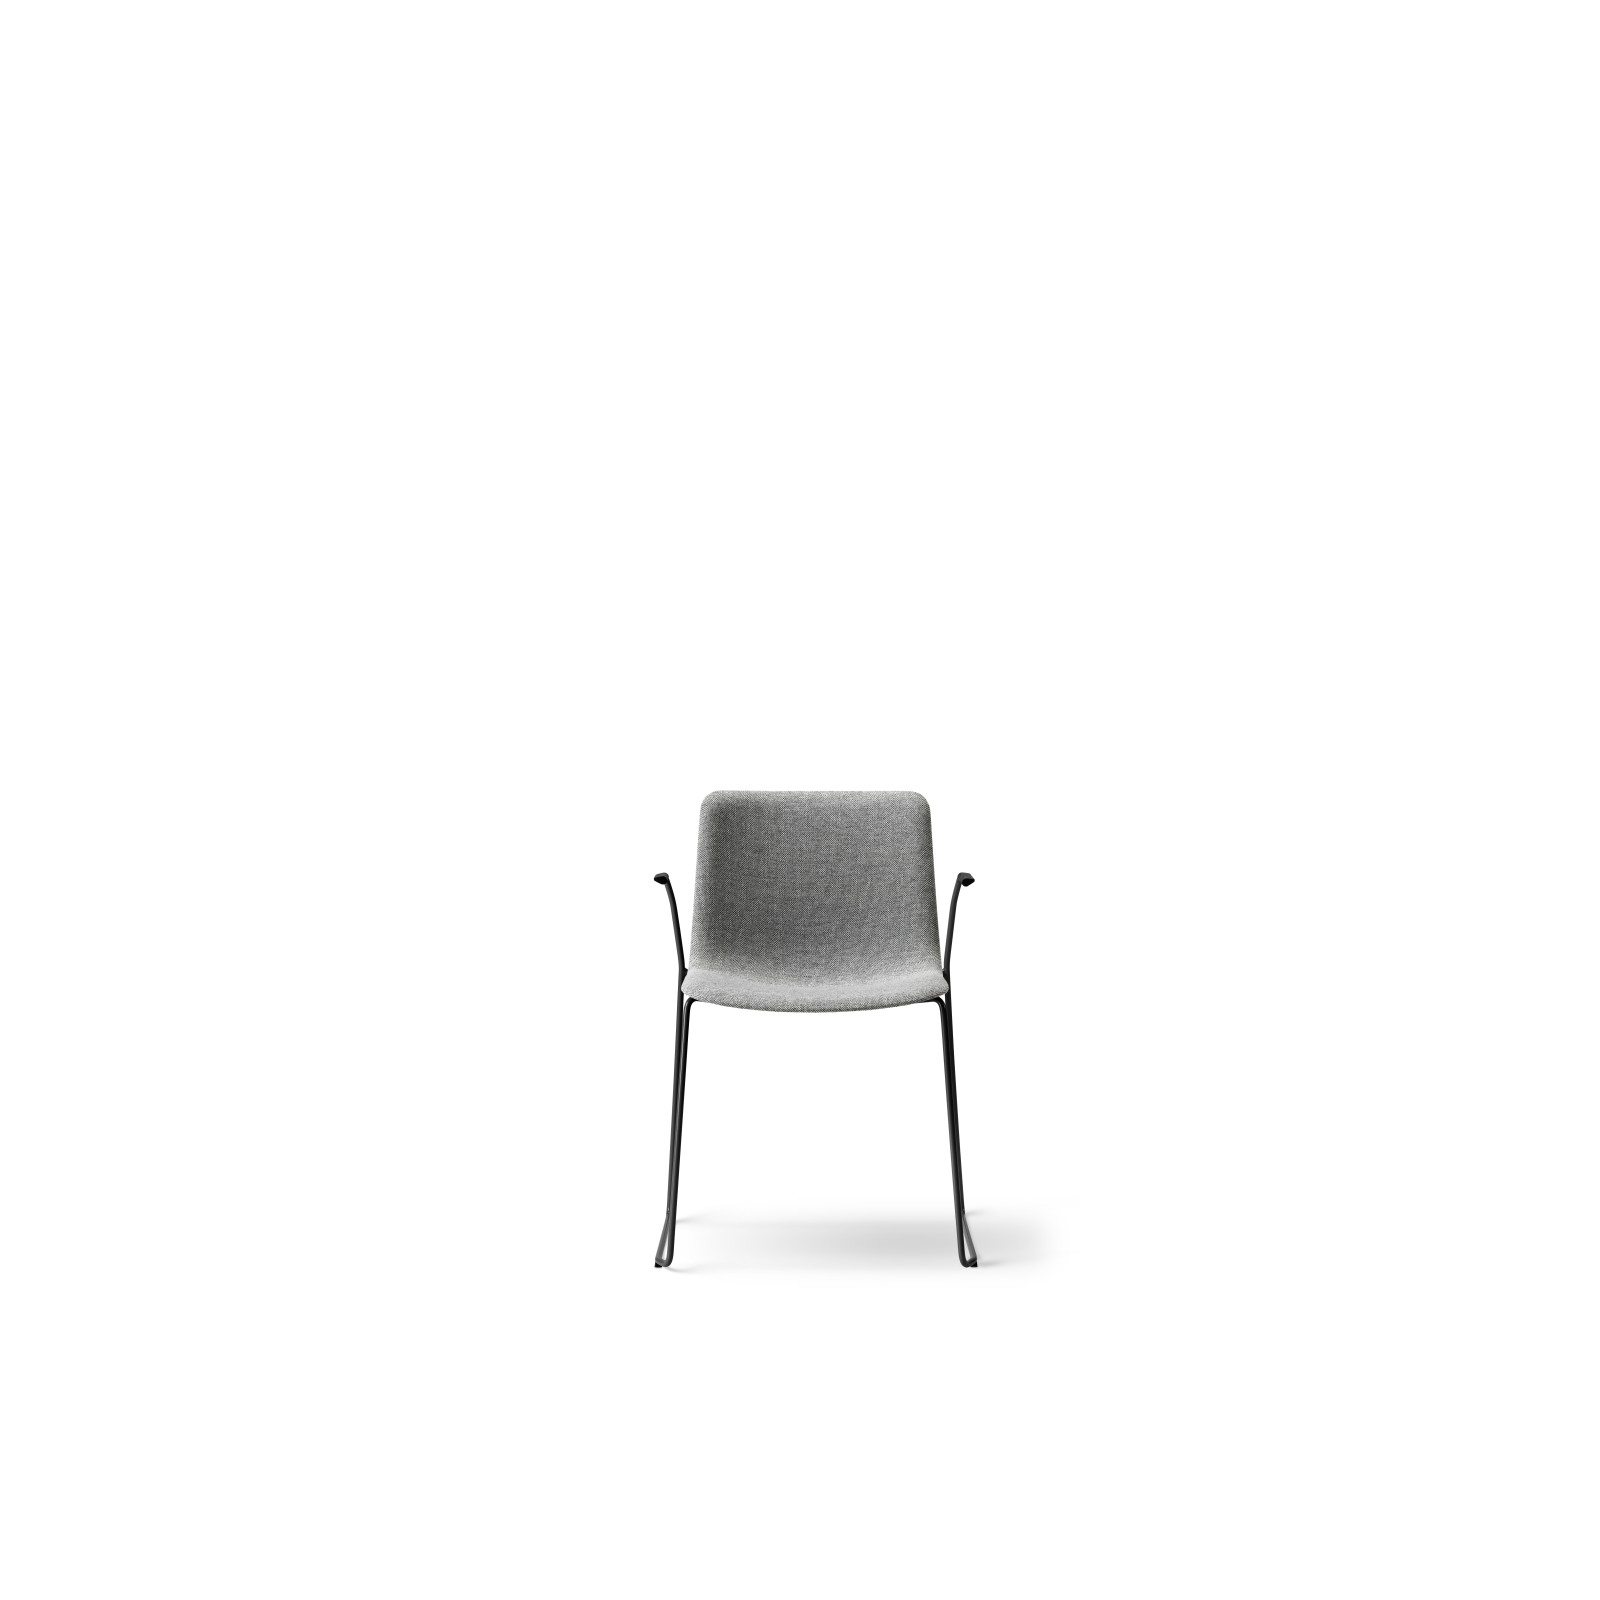 Pato Sledge Armchair Fully Upholstered Chrome Steel, Remix 2 143